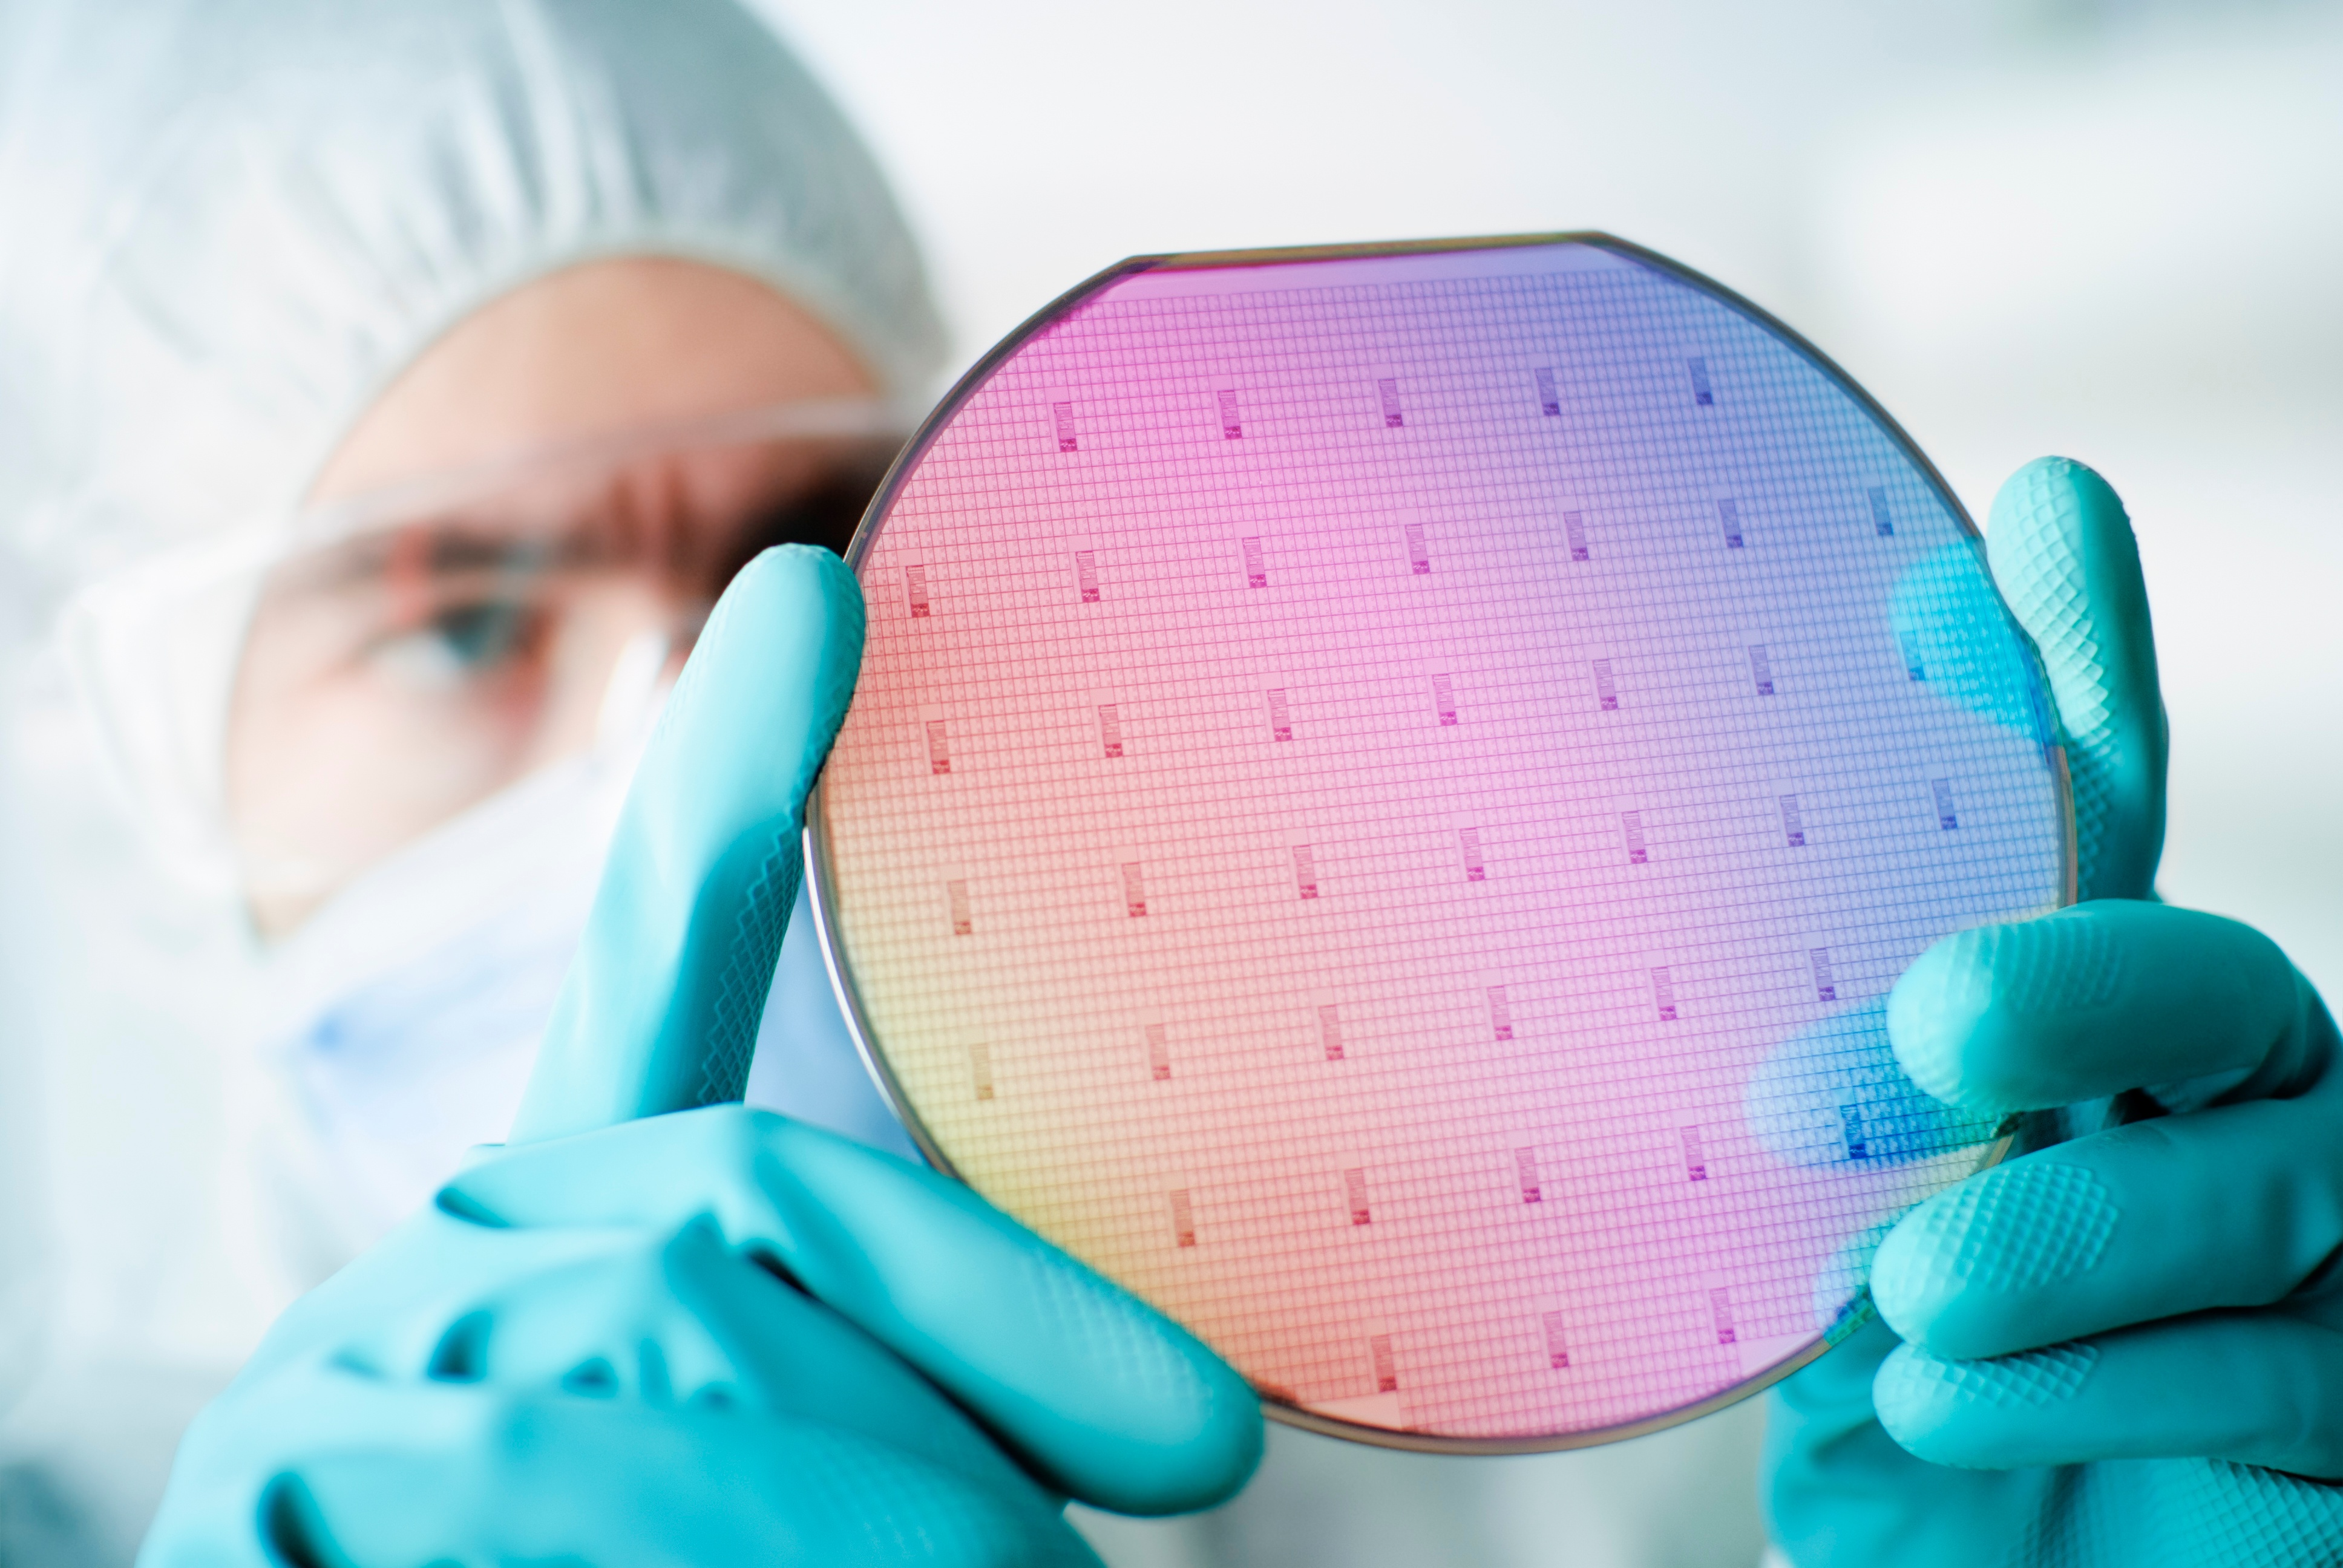 Silicon-Wafer-000015524880_Large.jpg